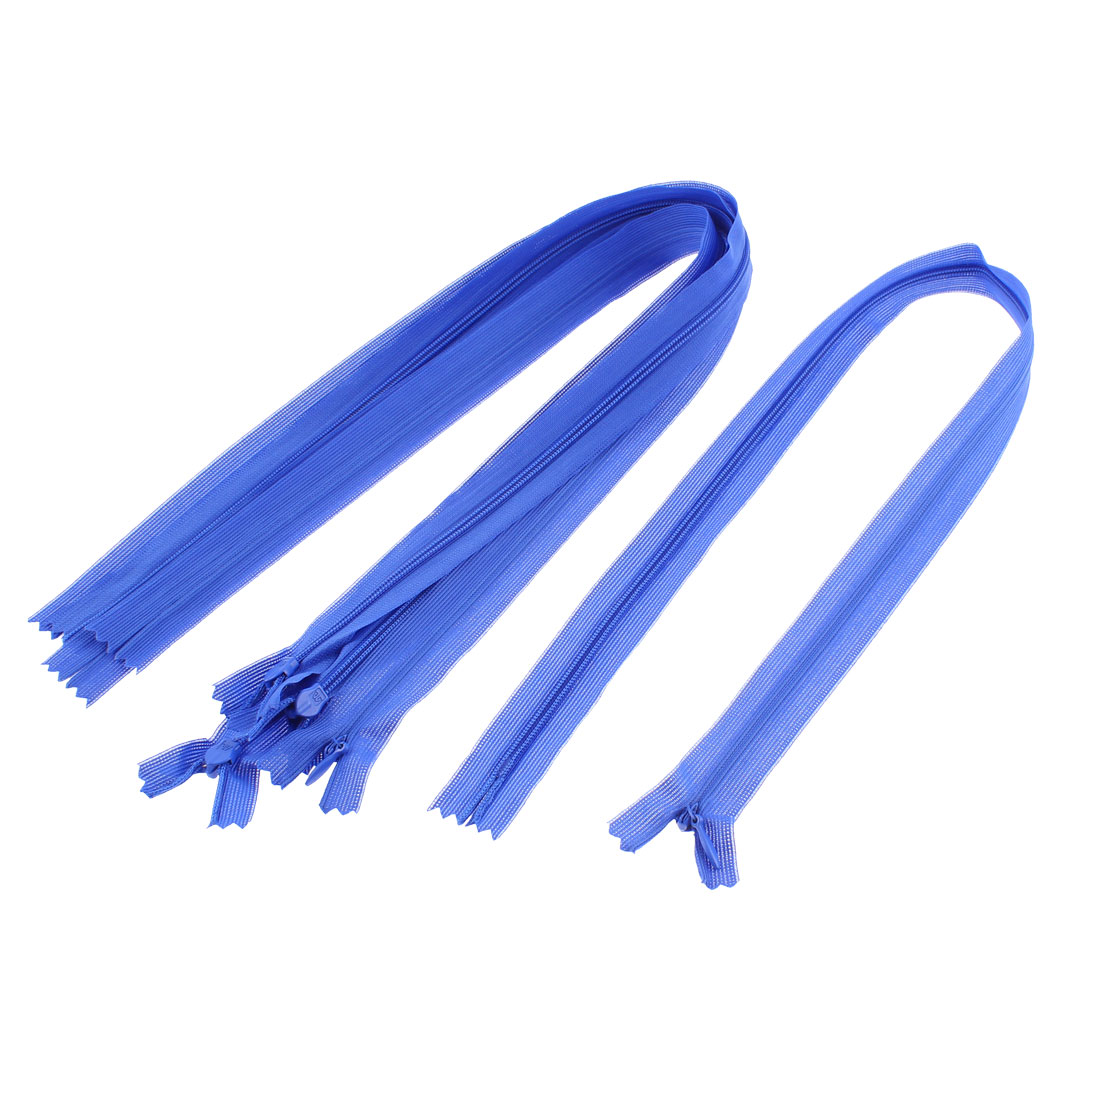 Dress Pants Closed End Nylon Zippers Tailor Sewing Craft Tool Blue 55cm 5 Pcs